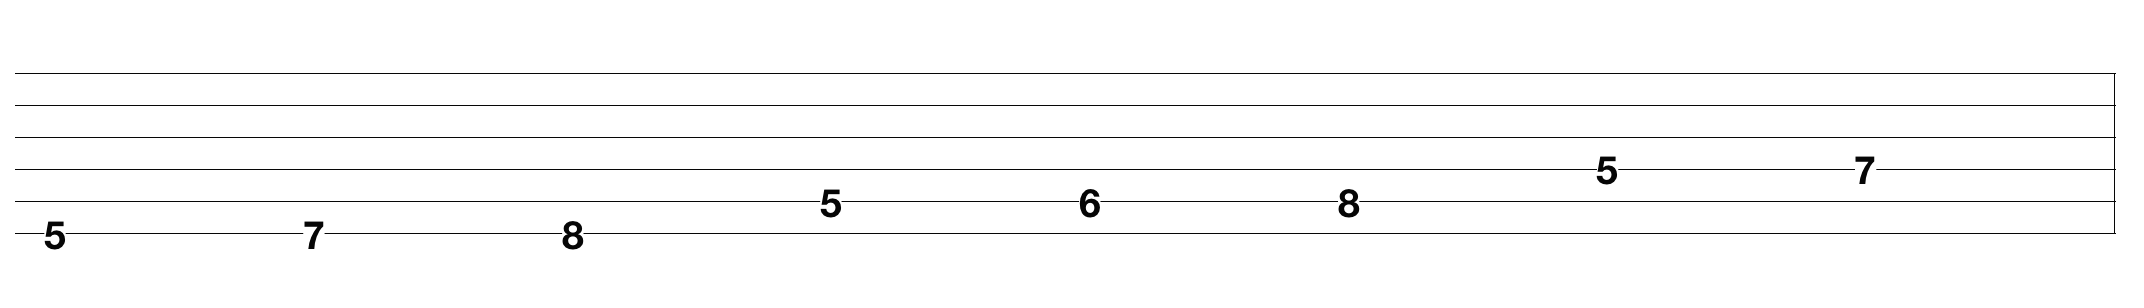 melodic-guitar-scales_6.png